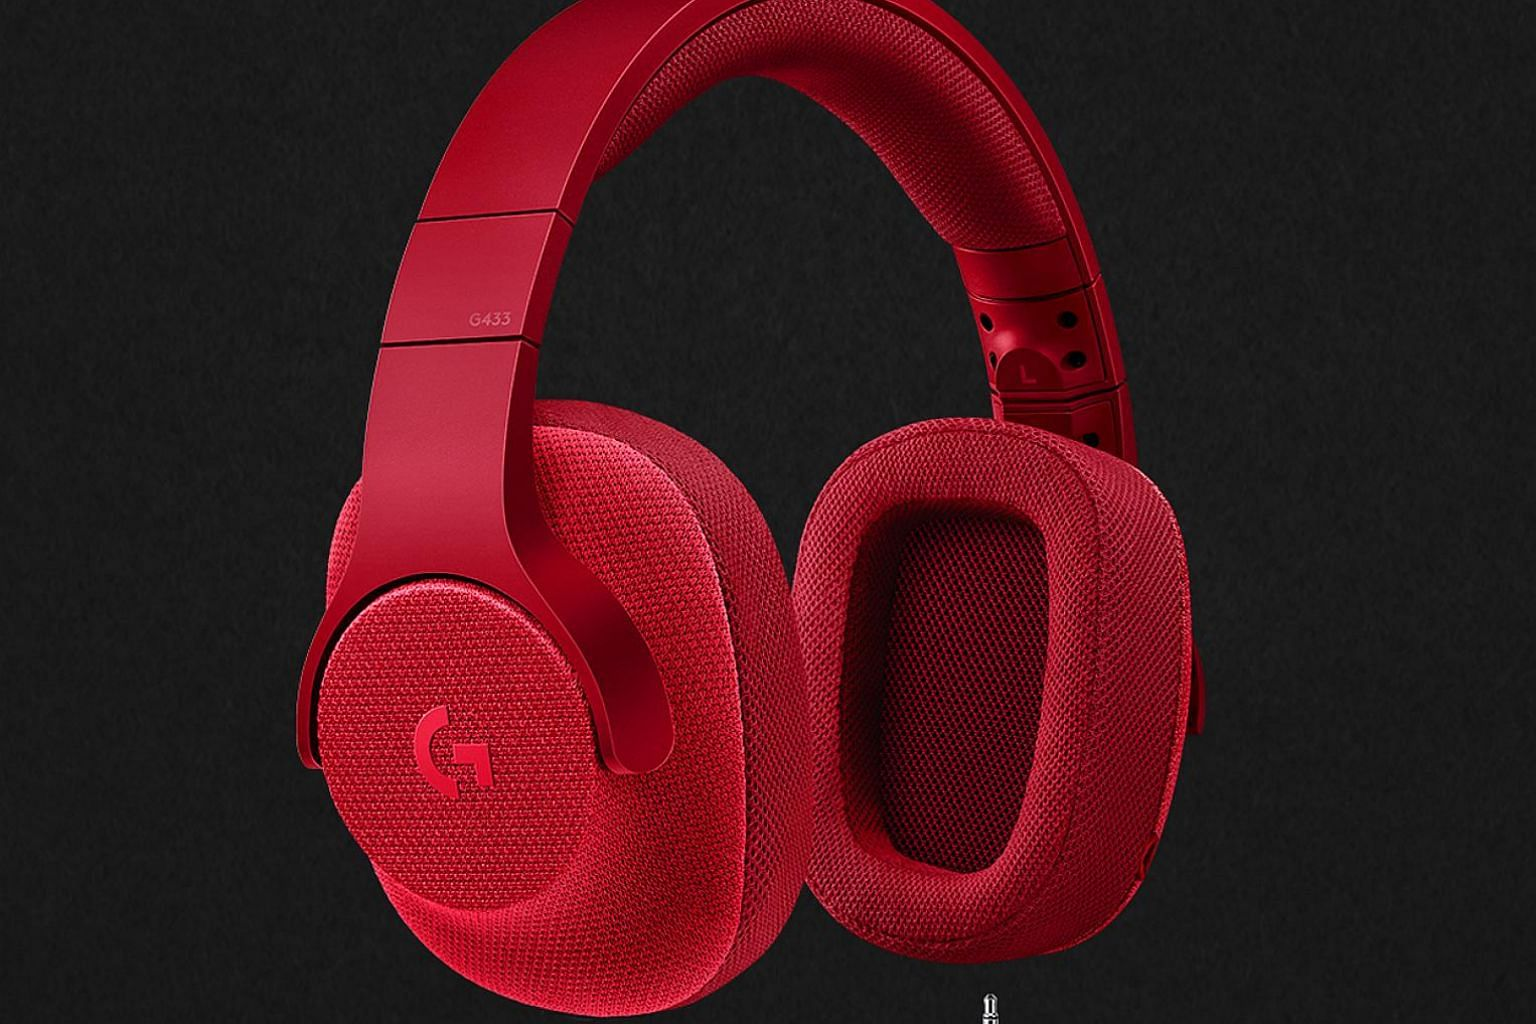 The Logitech G433 portable gaming headset comes in red, blue or the usual black and has a variety of different options for use.